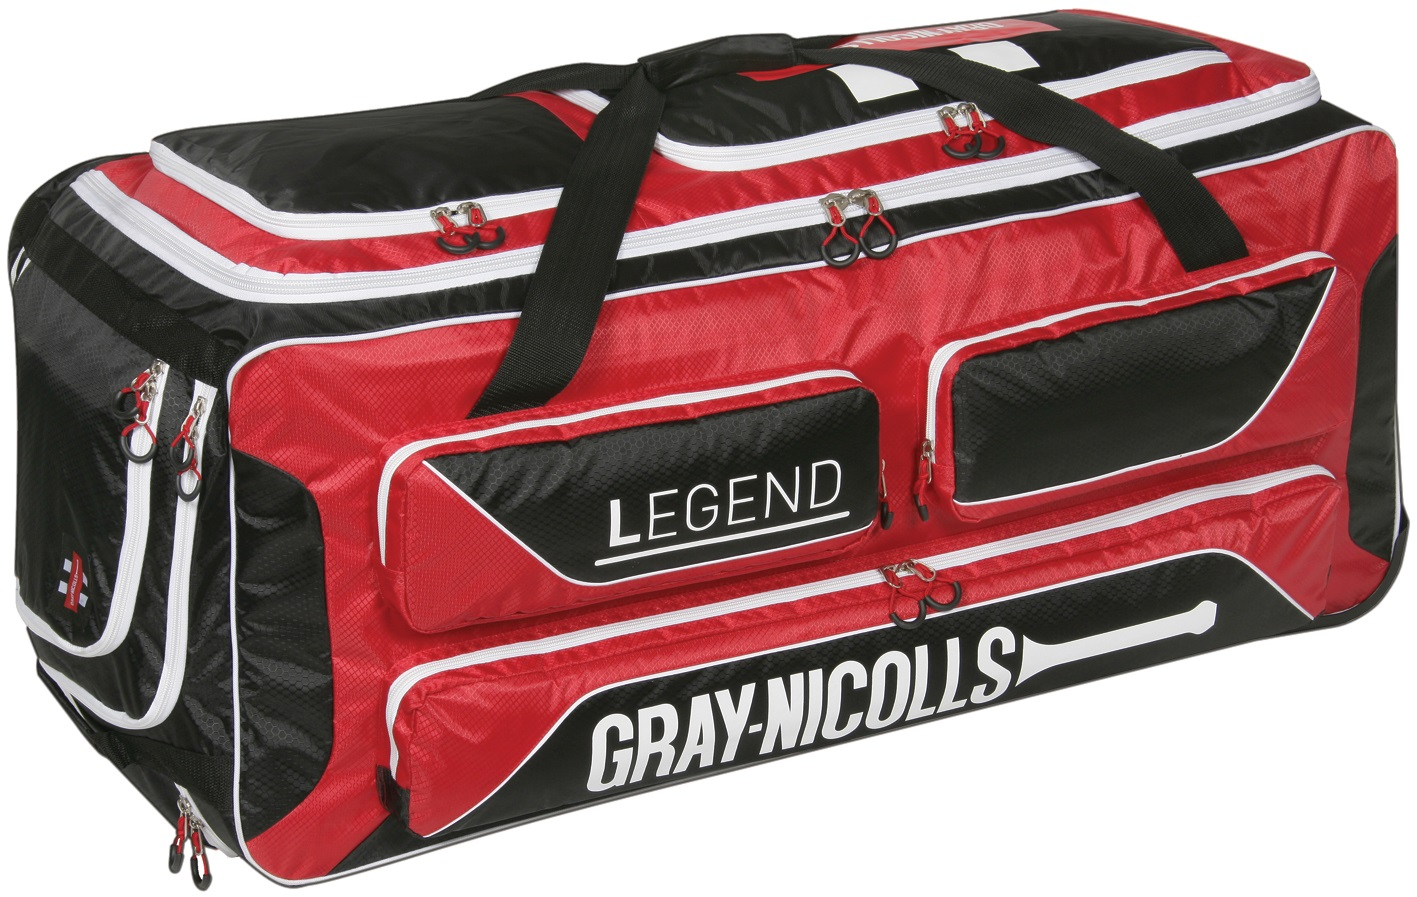 Gray Nicholls Legend Cricket Bag